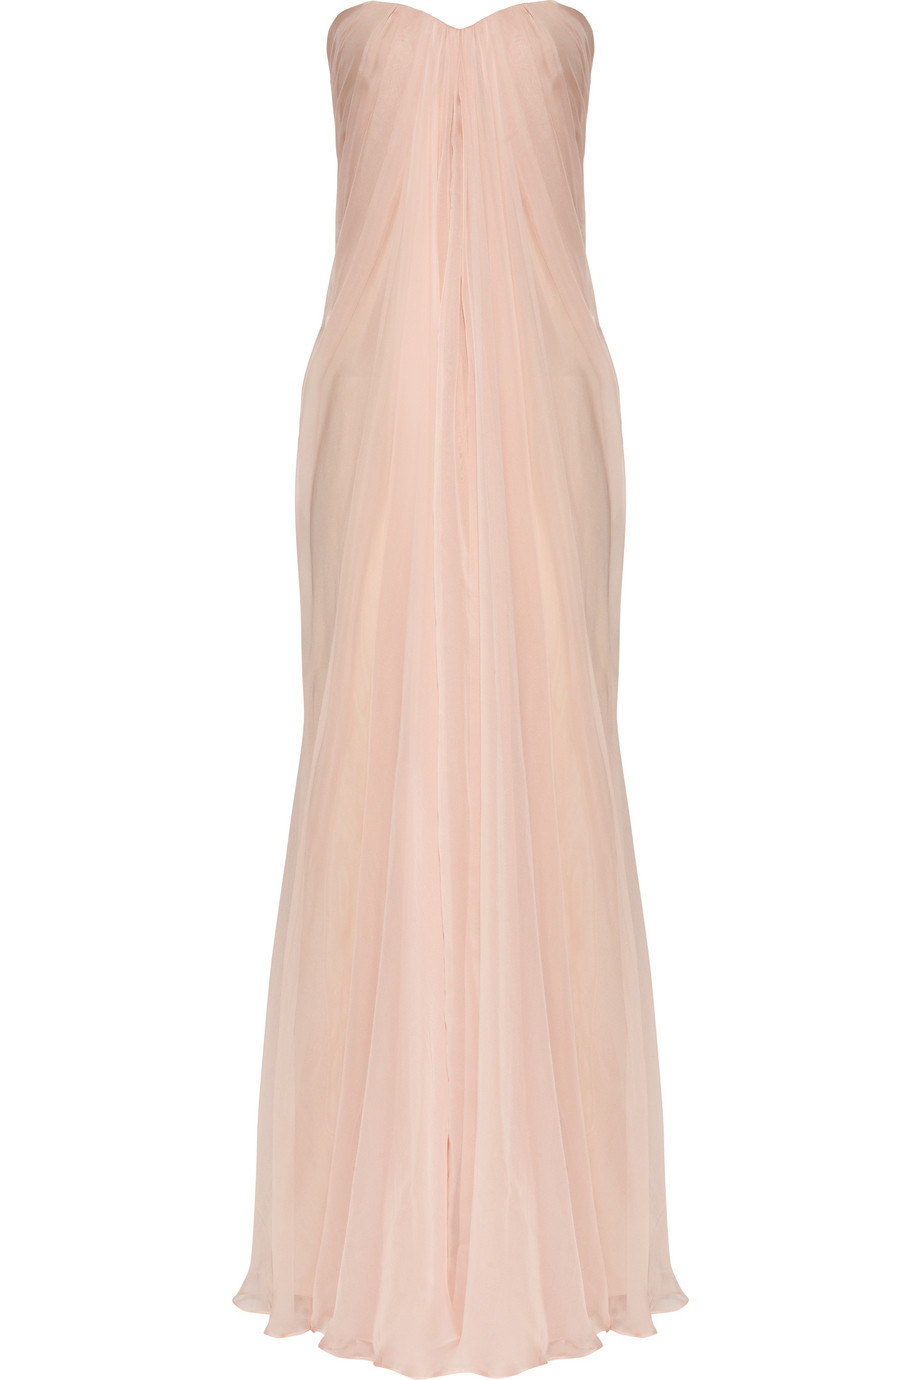 Petal-pink-wedding-dress-alexander-mcqueen-silk-chiffon.full